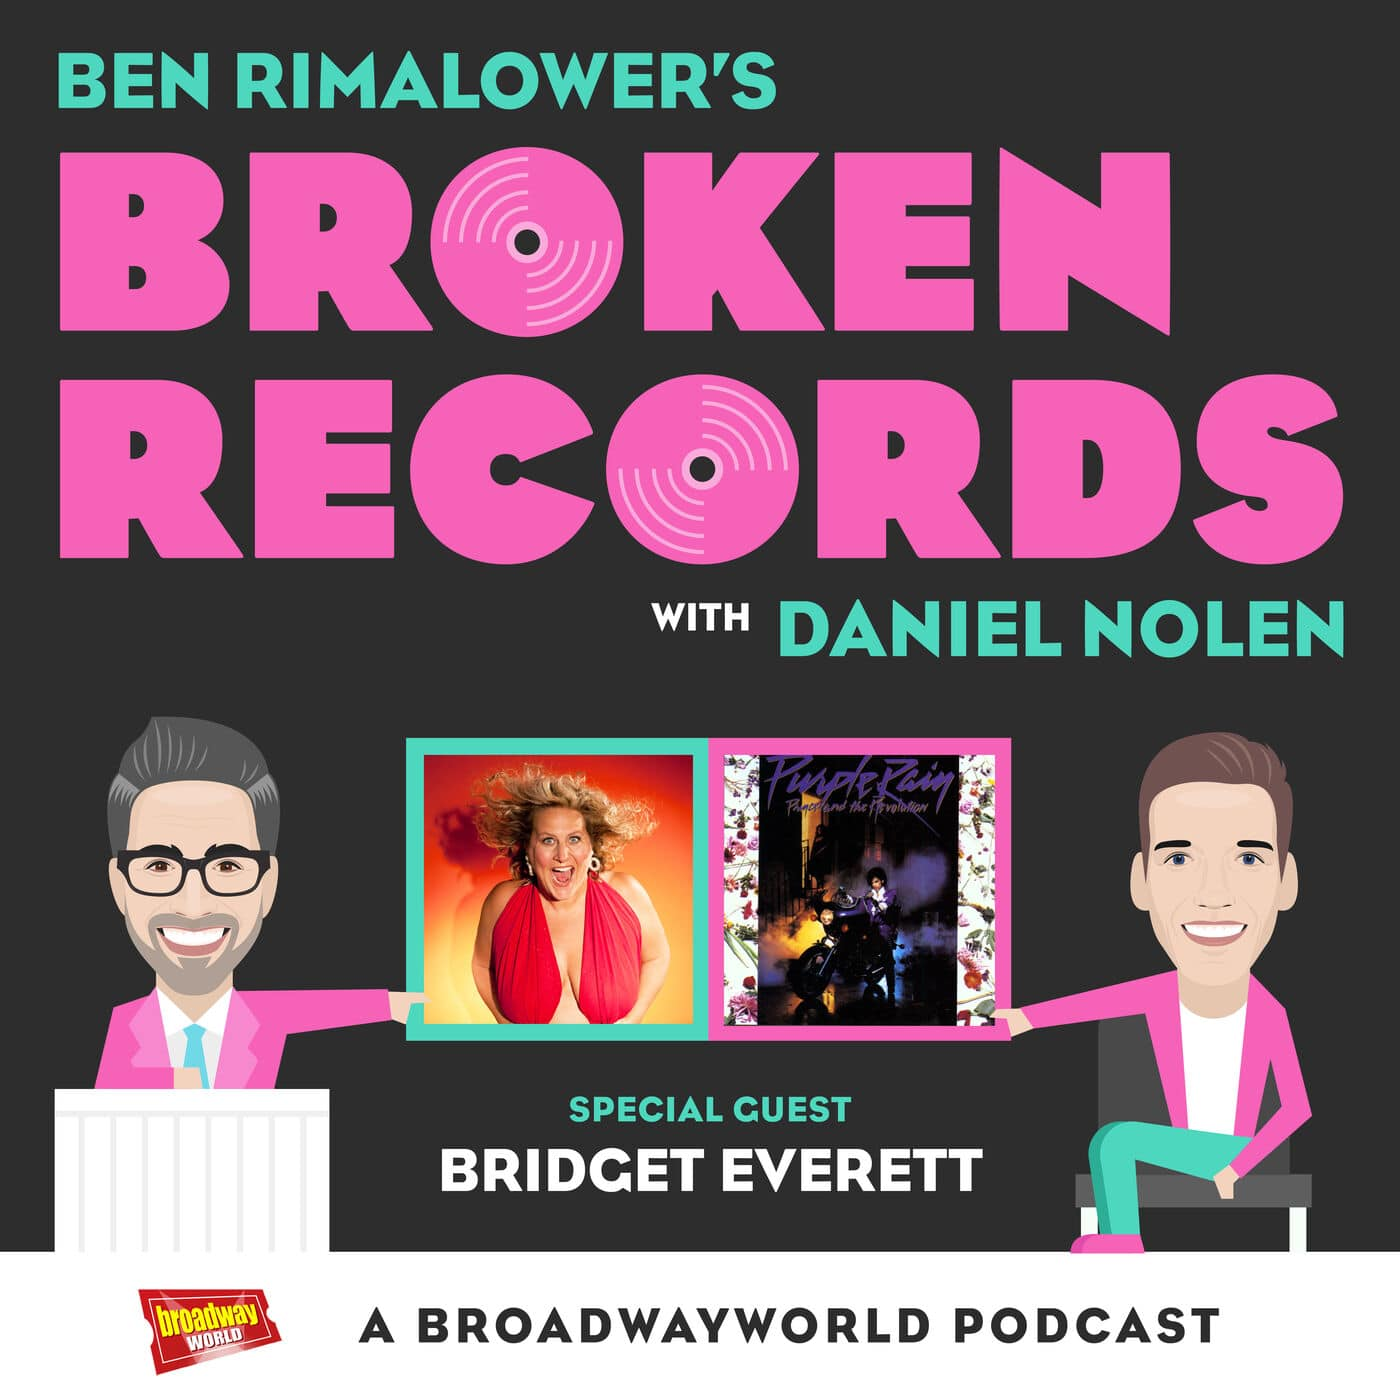 Ben Rimalower's Broken Records Daniel Nolen Episode 5